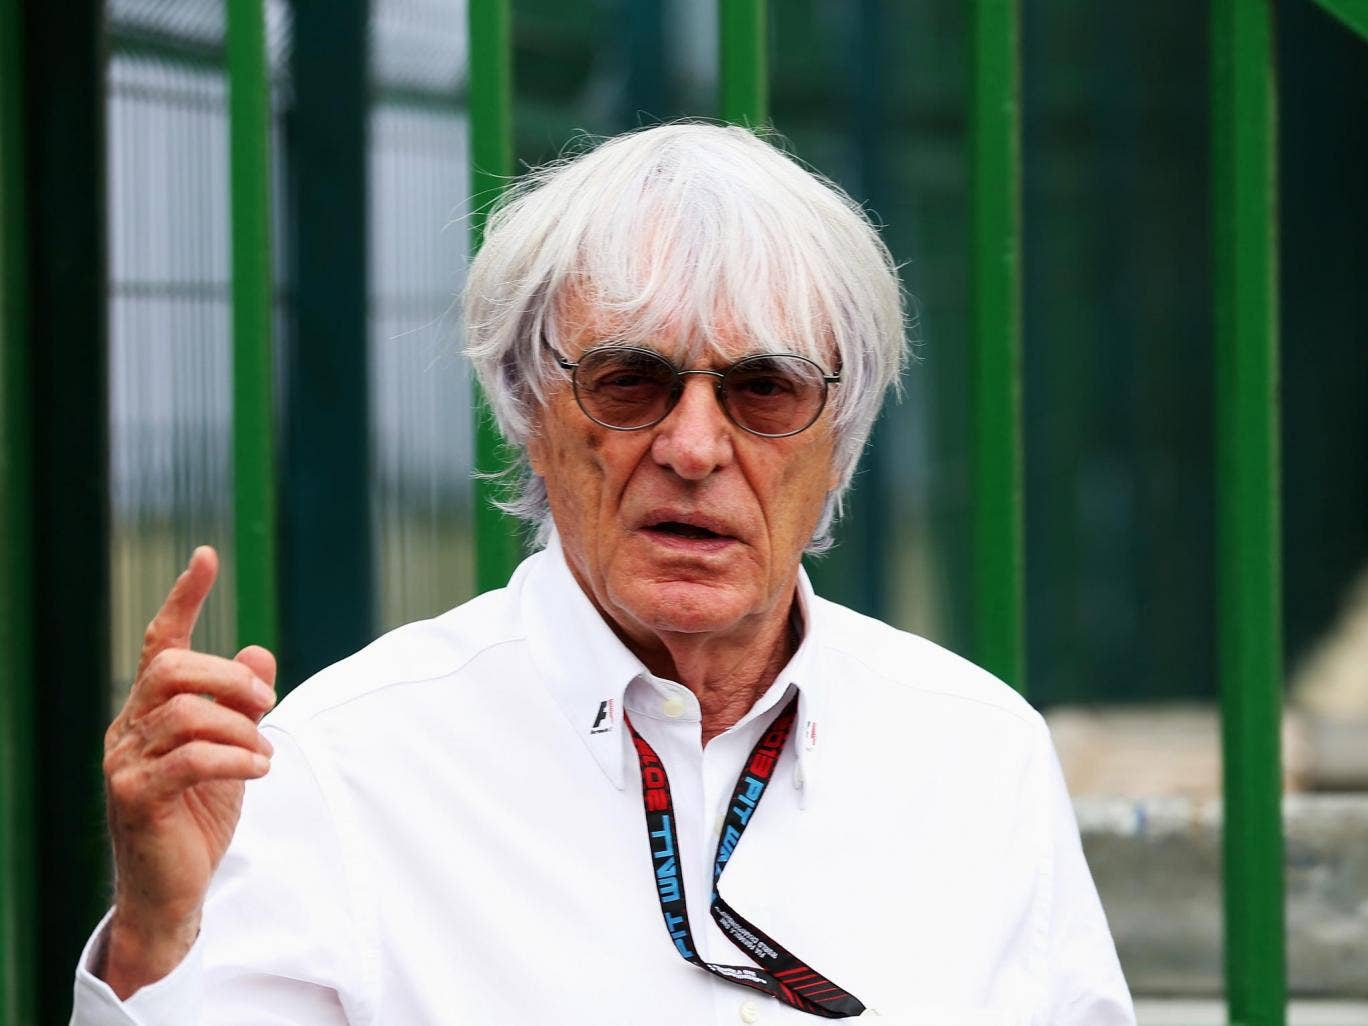 Bernie Ecclestone said next year's Russian Grand Prix will be held at night over a holiday period